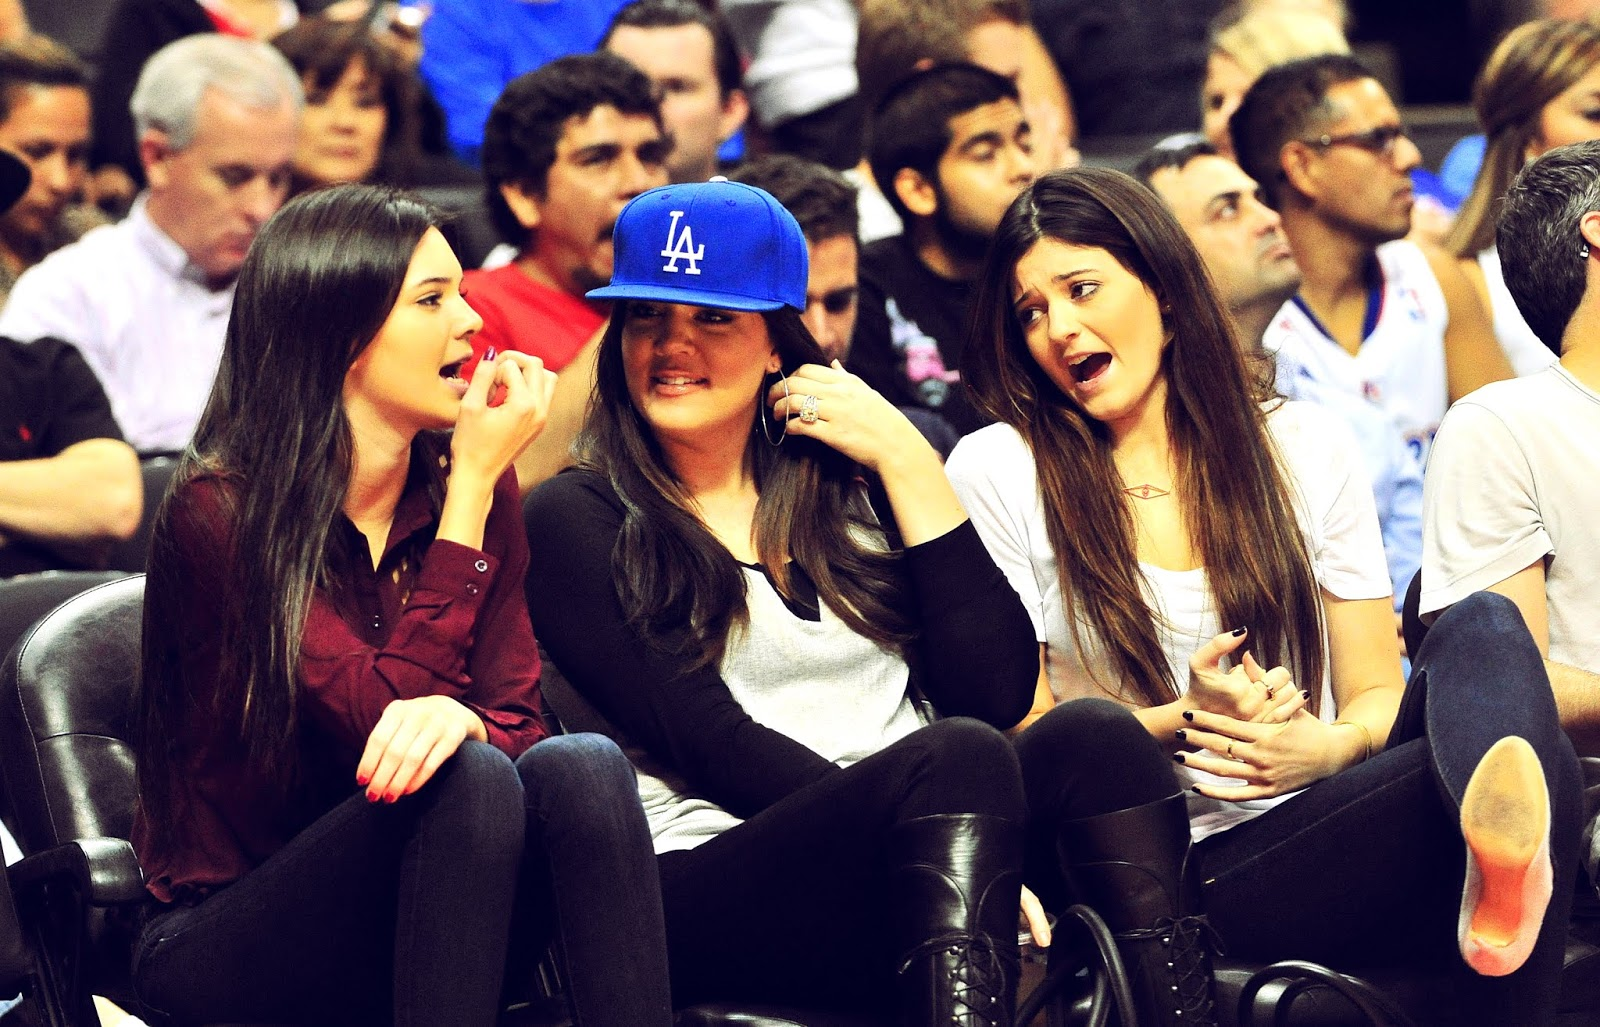 14 - Watching The Los Angeles Clippers Game on October 17, 2012